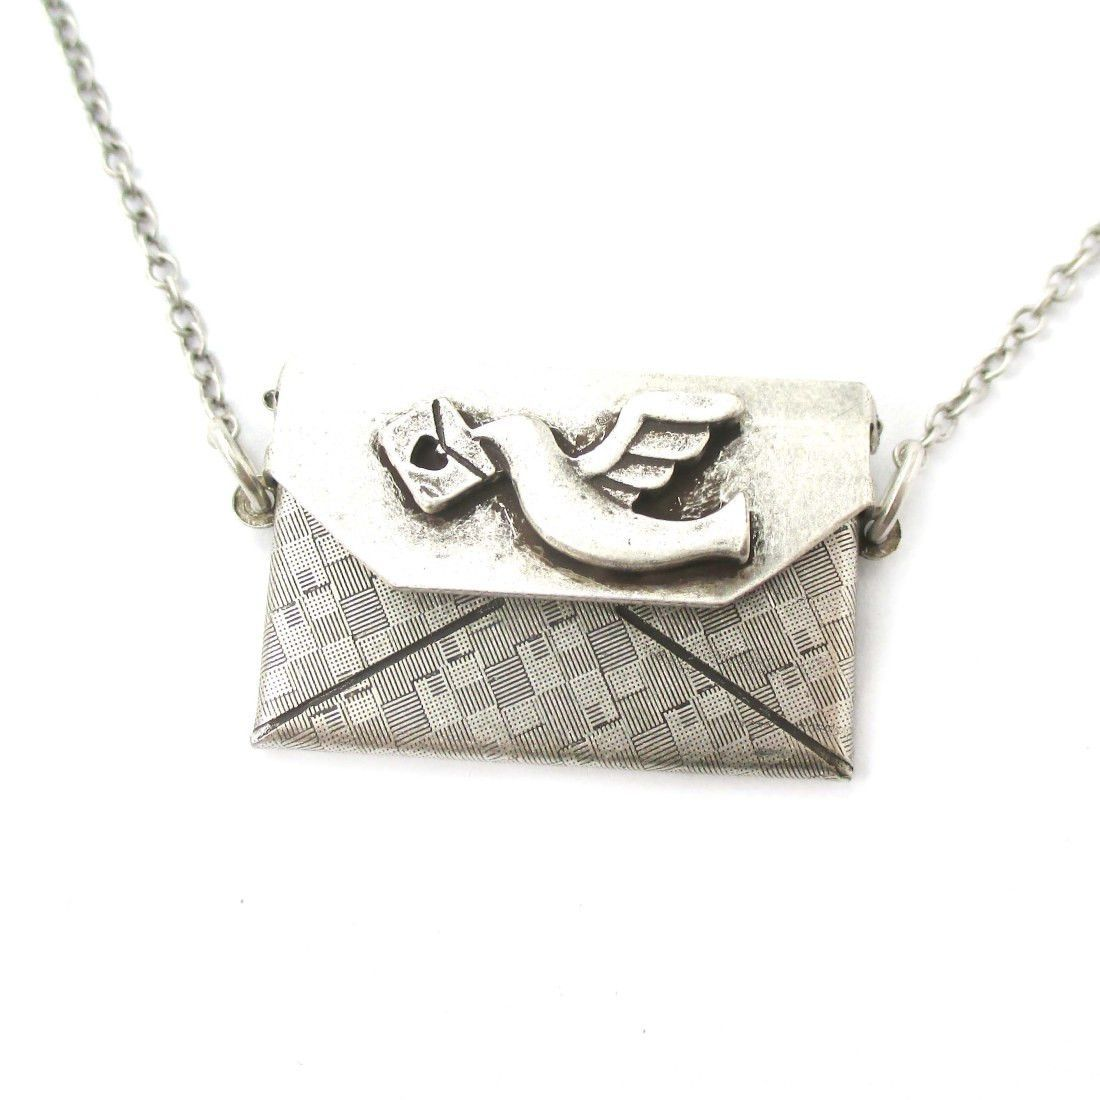 I love you letter envelope shaped pendant necklace in silver